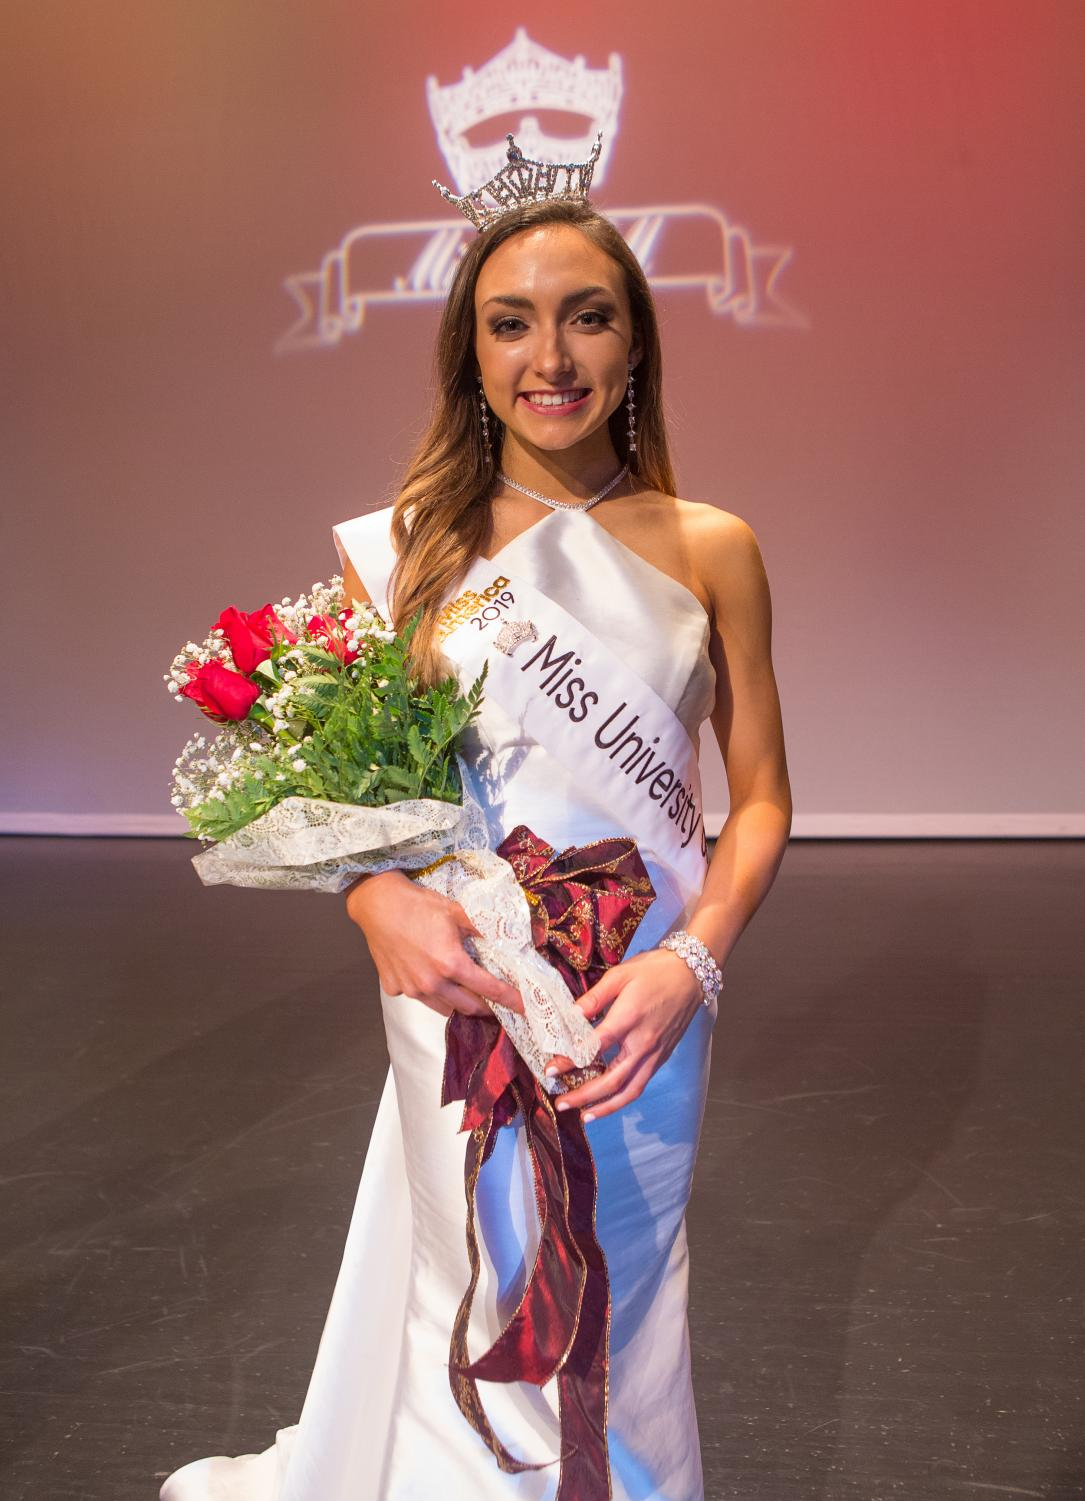 Miss ULM 2019, Monica Whitman